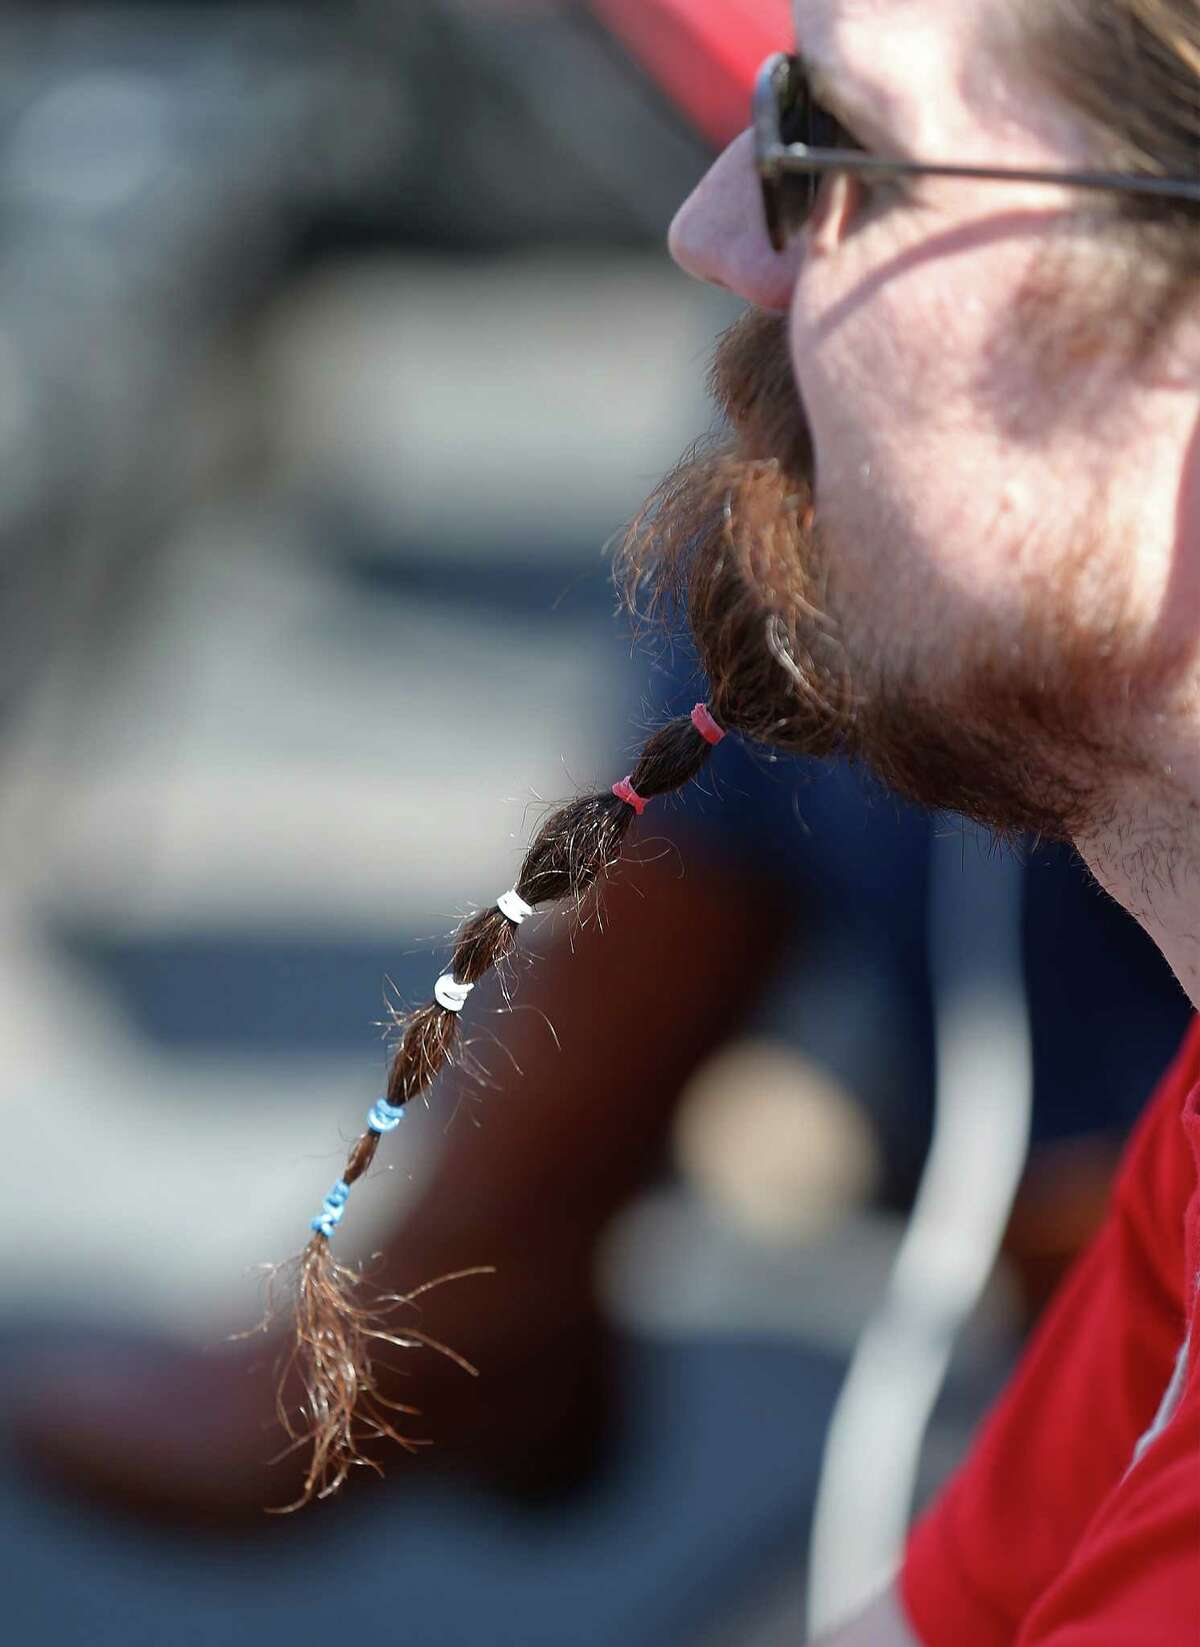 Campaign volunteer Tim Maxwell uses patriotic-colored rubber bands to tie his beard as Democratic presidential candidate and U.S. Senator Bernie Sanders rallies supporters at the Circuit of the Americas near Austin on Saturday, Feb. 27, 2016 as the campaign stumps for the upcoming Texas Primary. Thousands of supporters lined up to see Sanders and to hear his proposals if he were to be elected president. Sanders touched on topics of workers' wages, immigration, health insurance, bank reform and free public college and university tuition. Over 6,500 were reported to be at the rally as many were still filing in as Sanders spoke. The Texas Primary will take place on March 1. (Kin Man Hui/San Antonio Express-News)